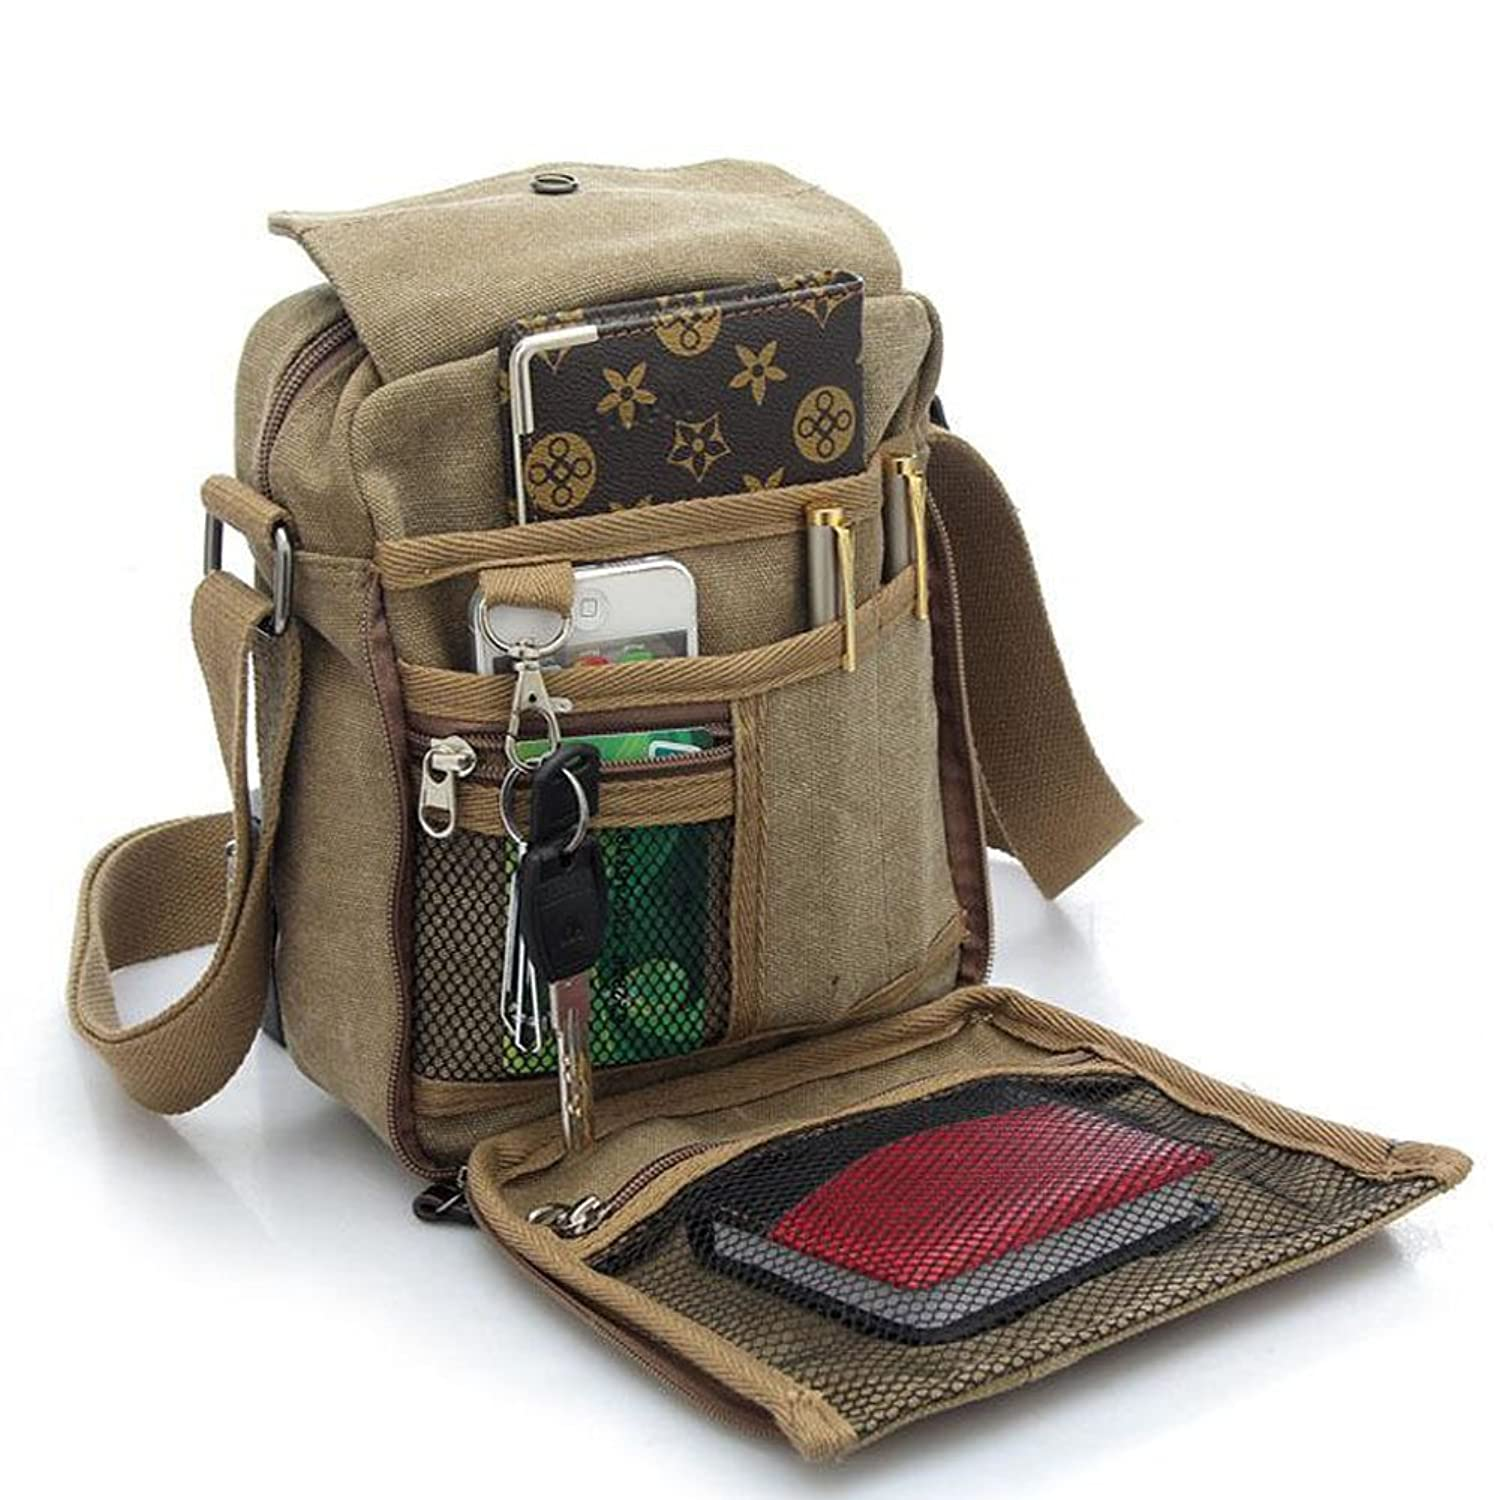 Amazon.com: Men Travel Casual Outdoor Shoulder Bags: Shoes